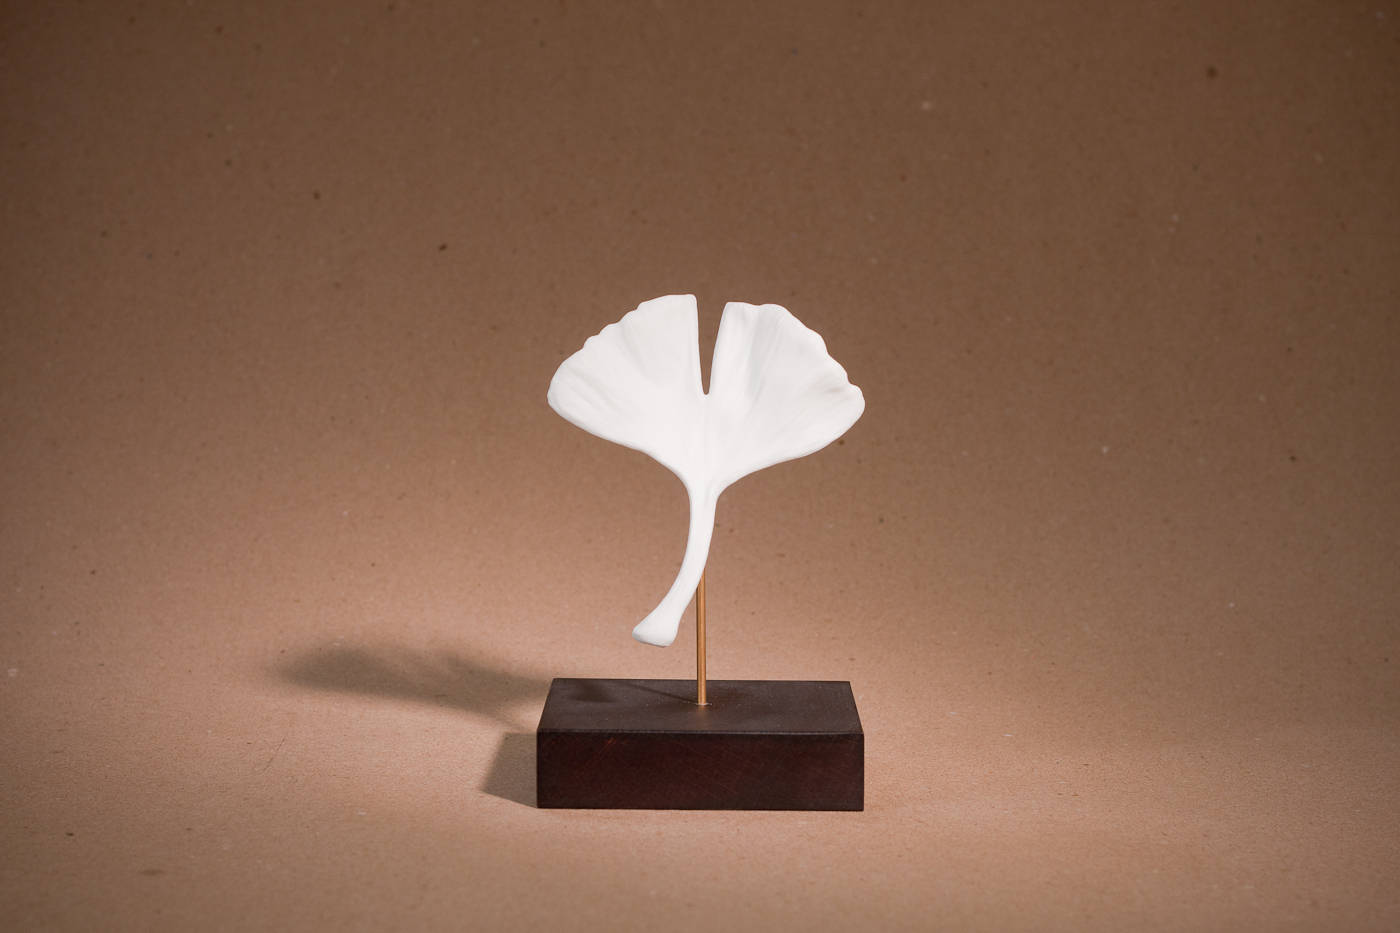 Gingko sur socle porcelaine